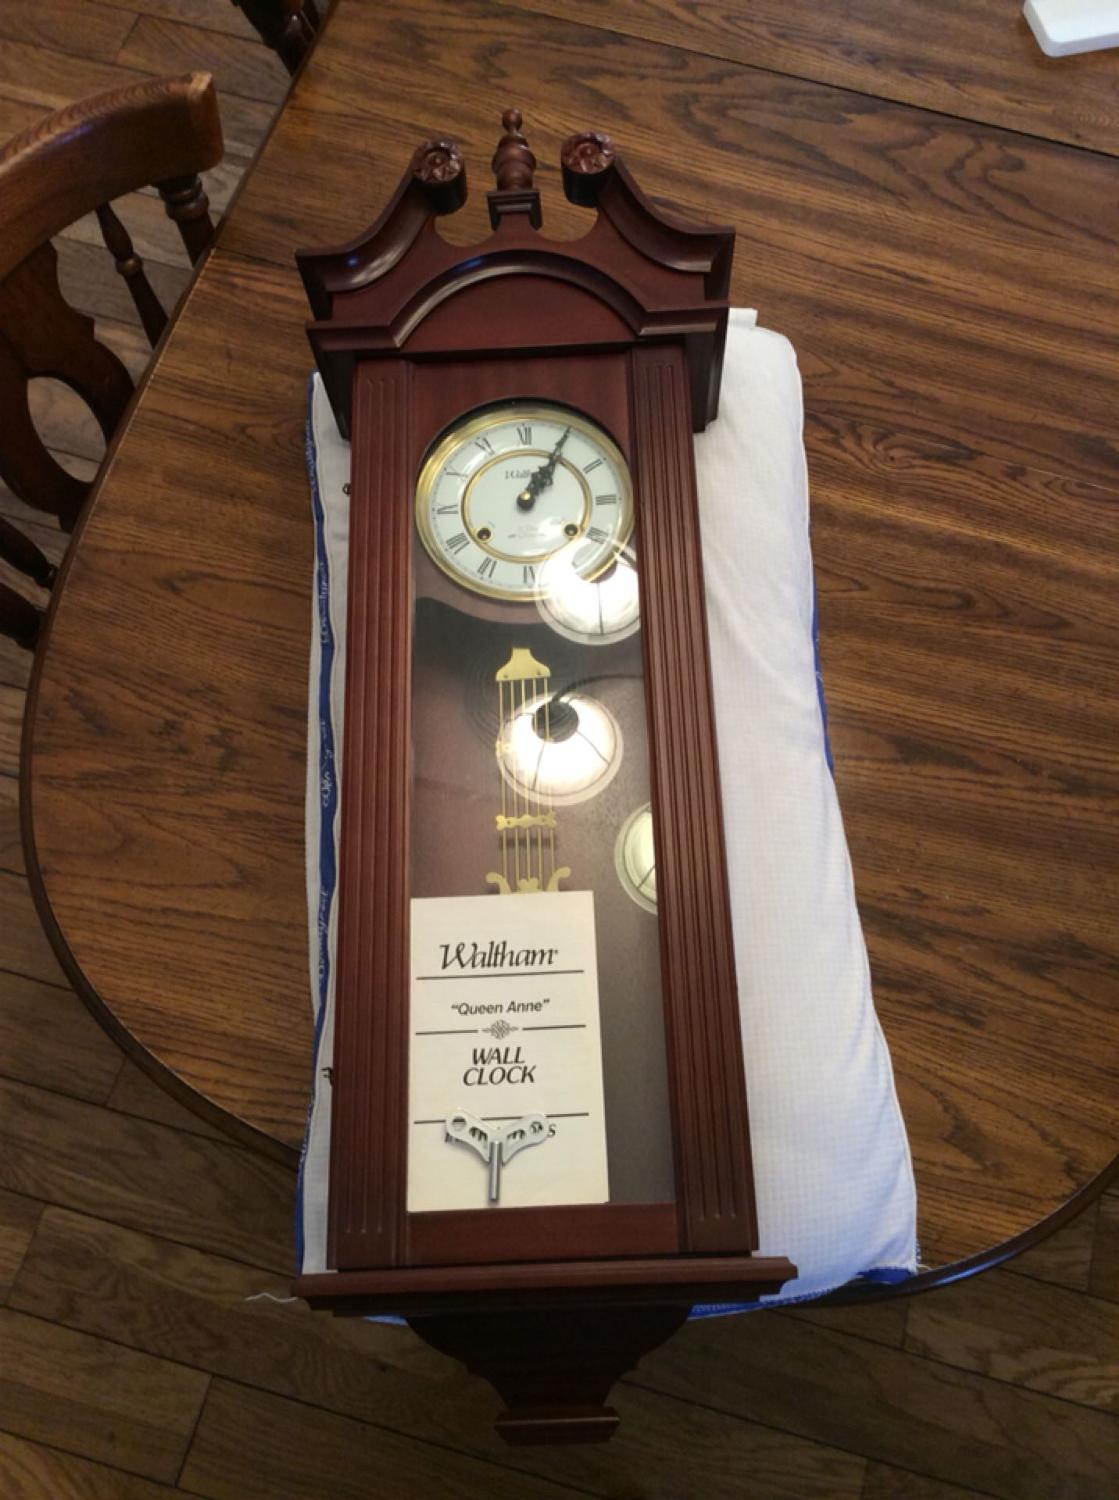 Best signed by waltham queen ann 31 day chime wall clock for best signed by waltham queen ann 31 day chime wall clock for sale in bloomington indiana for 2017 amipublicfo Image collections